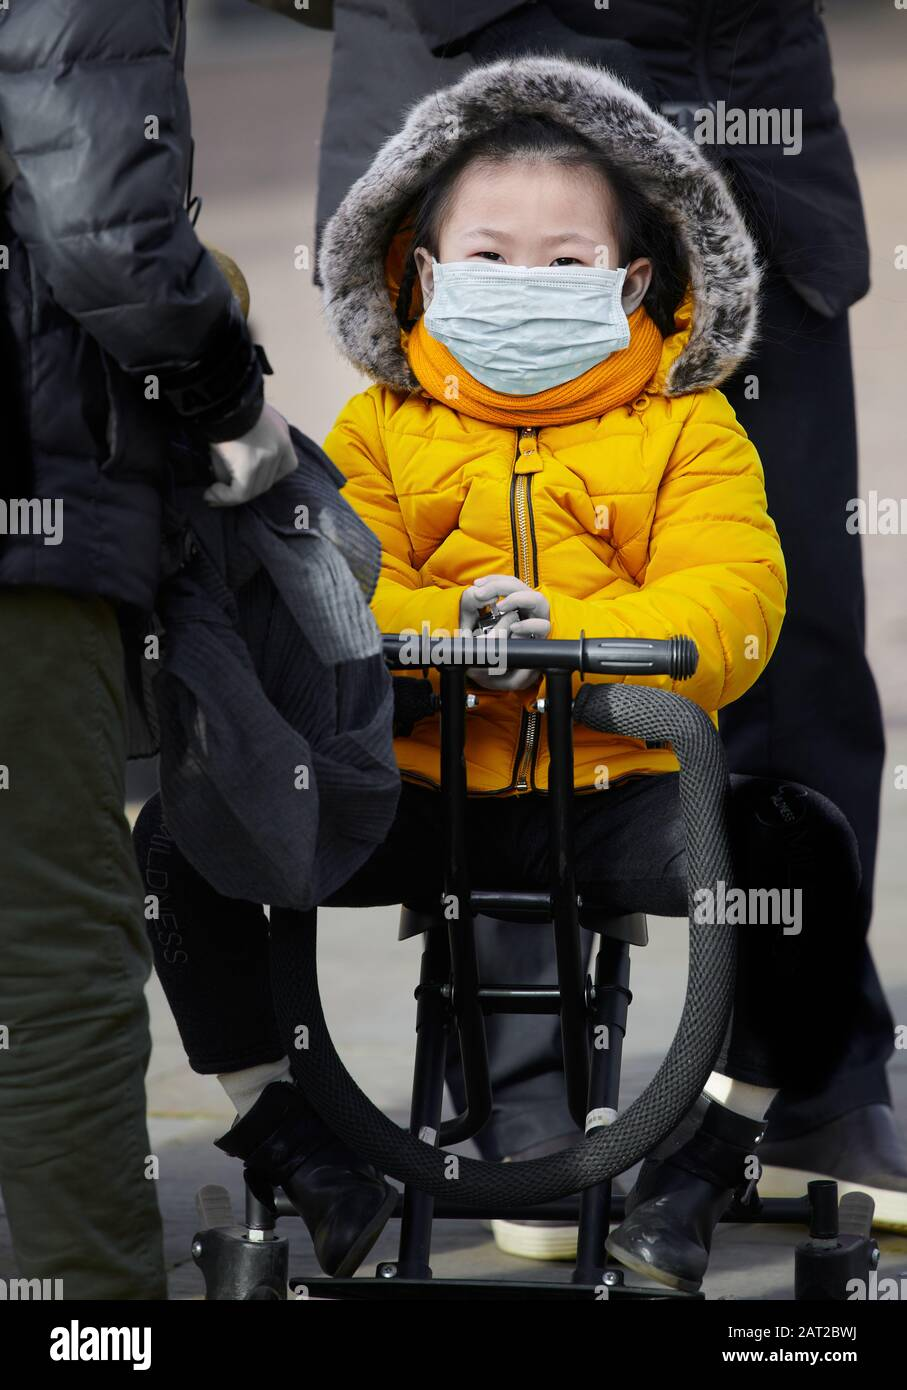 Face mask worn by a young chinese girl in Cambridge, England, on 30 january 2020, to prevent catching the coronavirus flu. Stock Photo